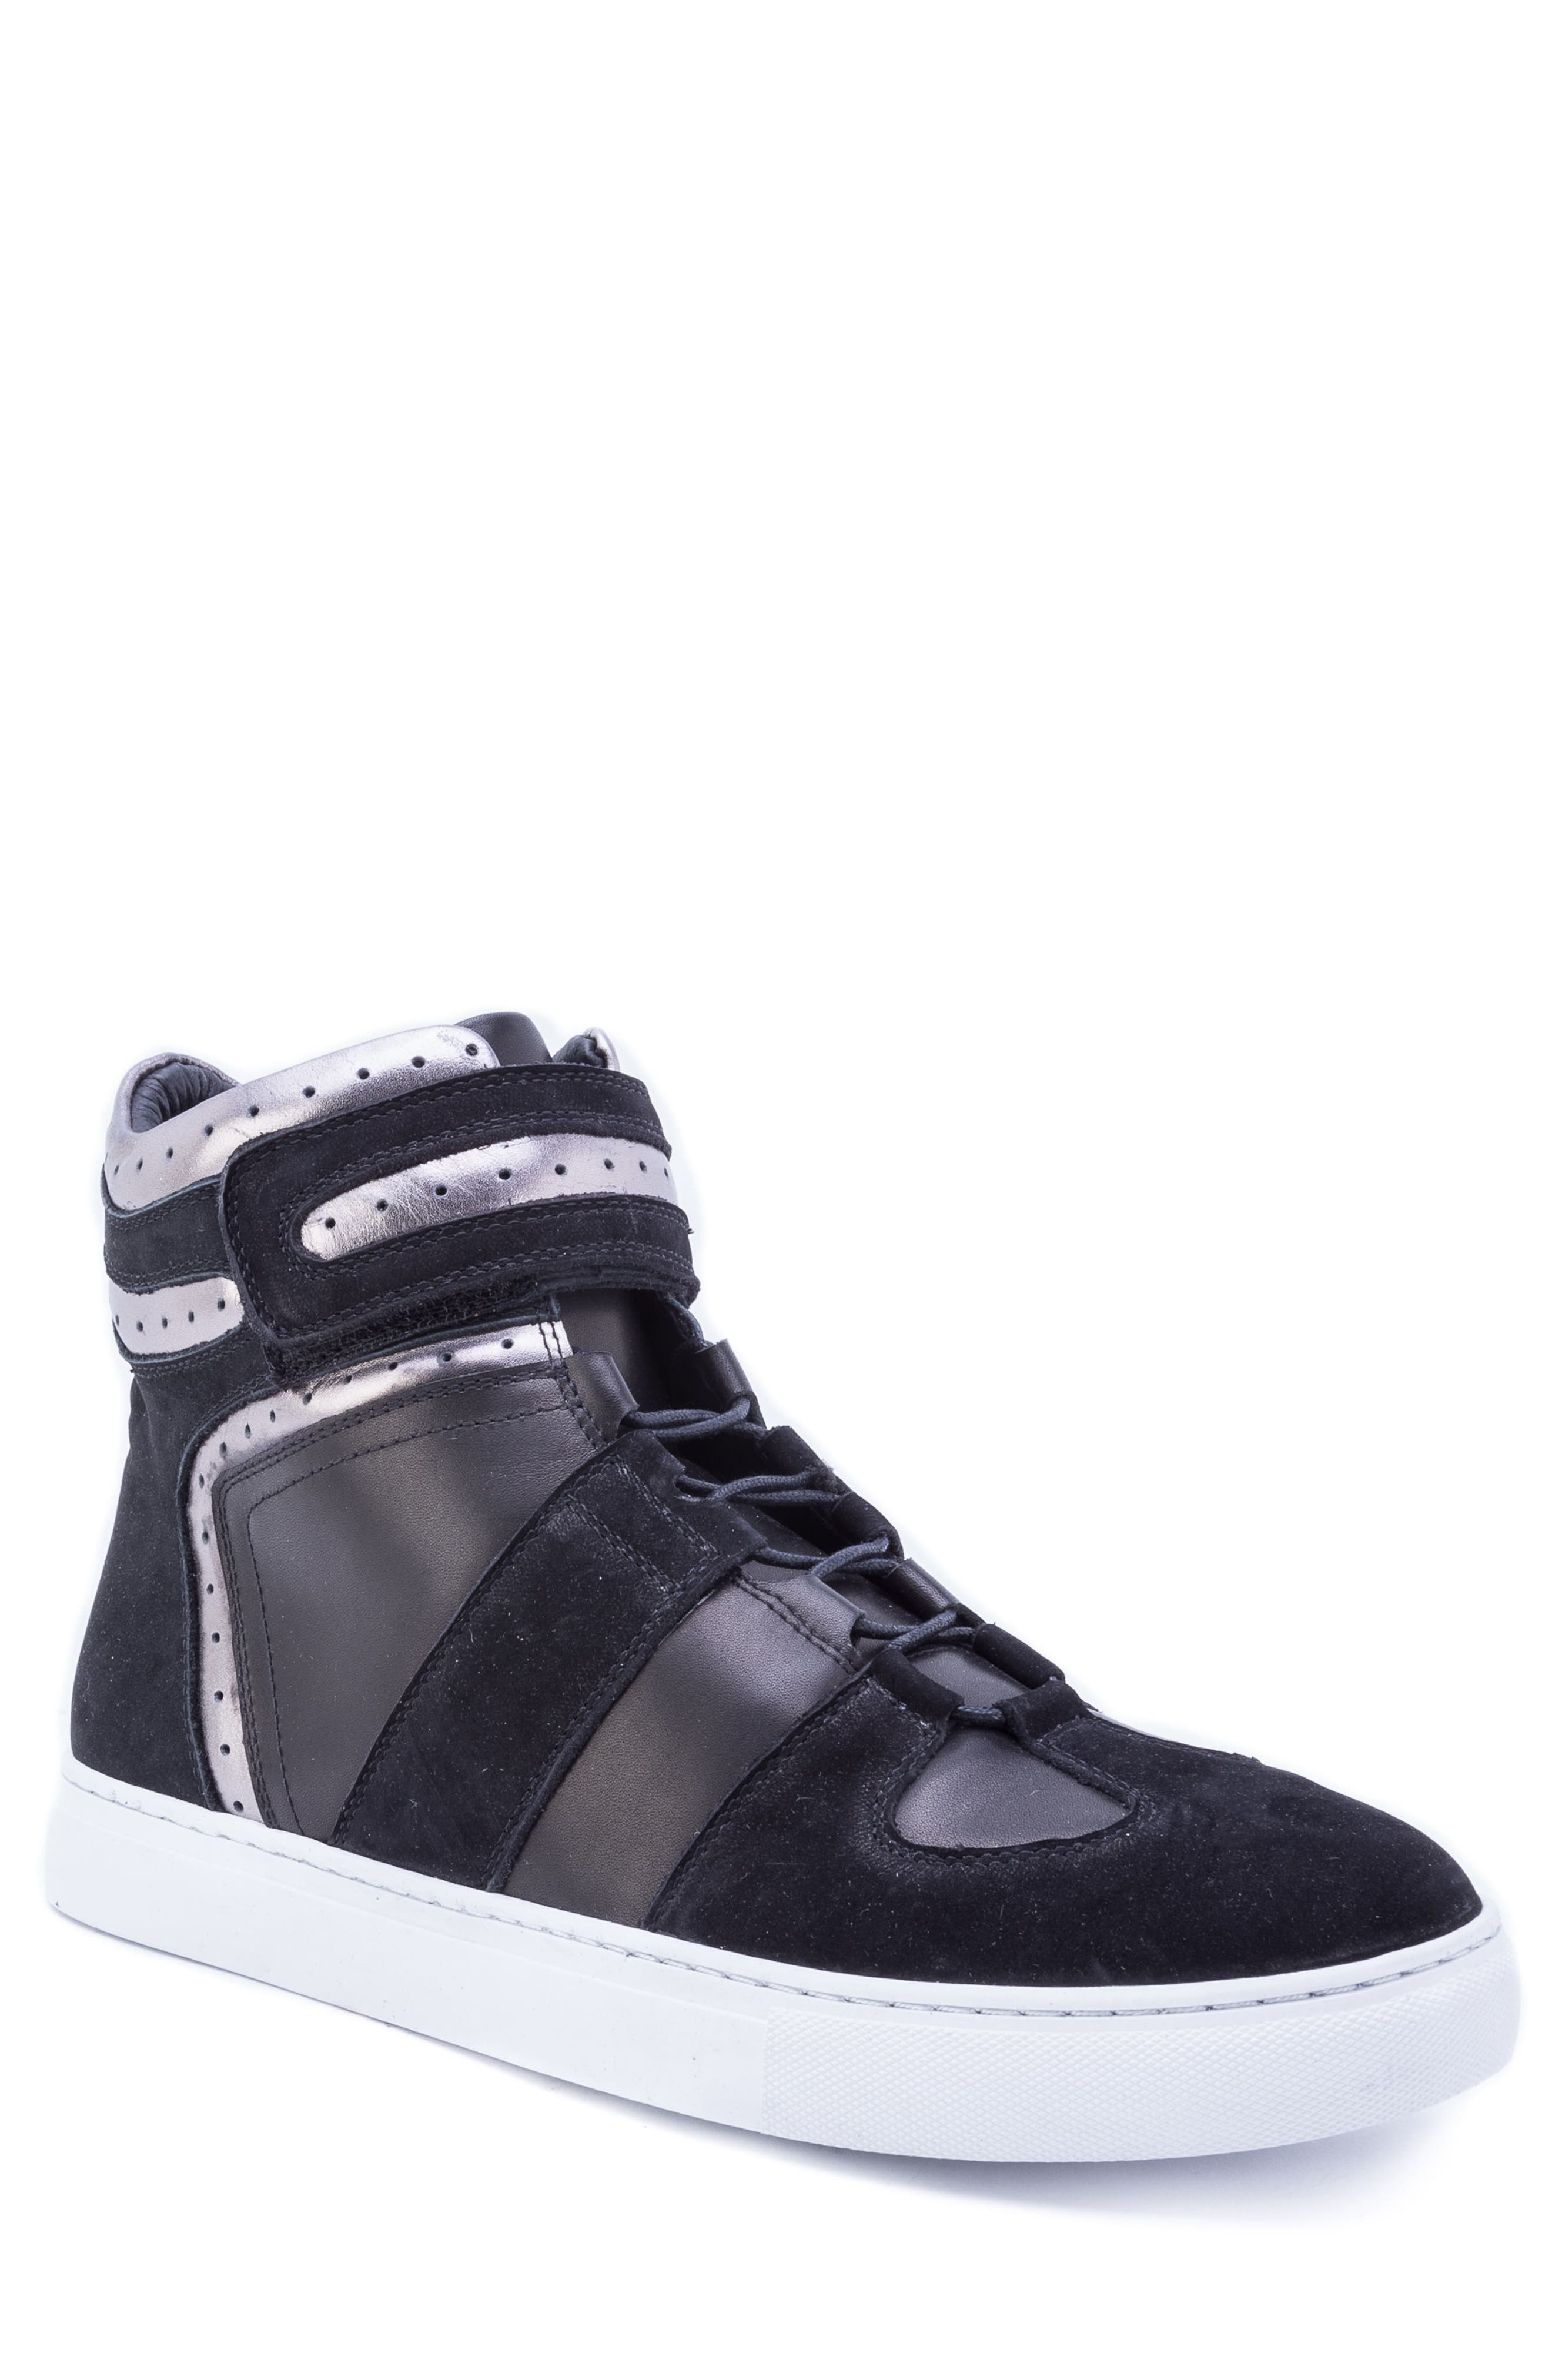 Belmondo High Top Sneaker,                         Main,                         color, BLACK LEATHER/ SUEDE